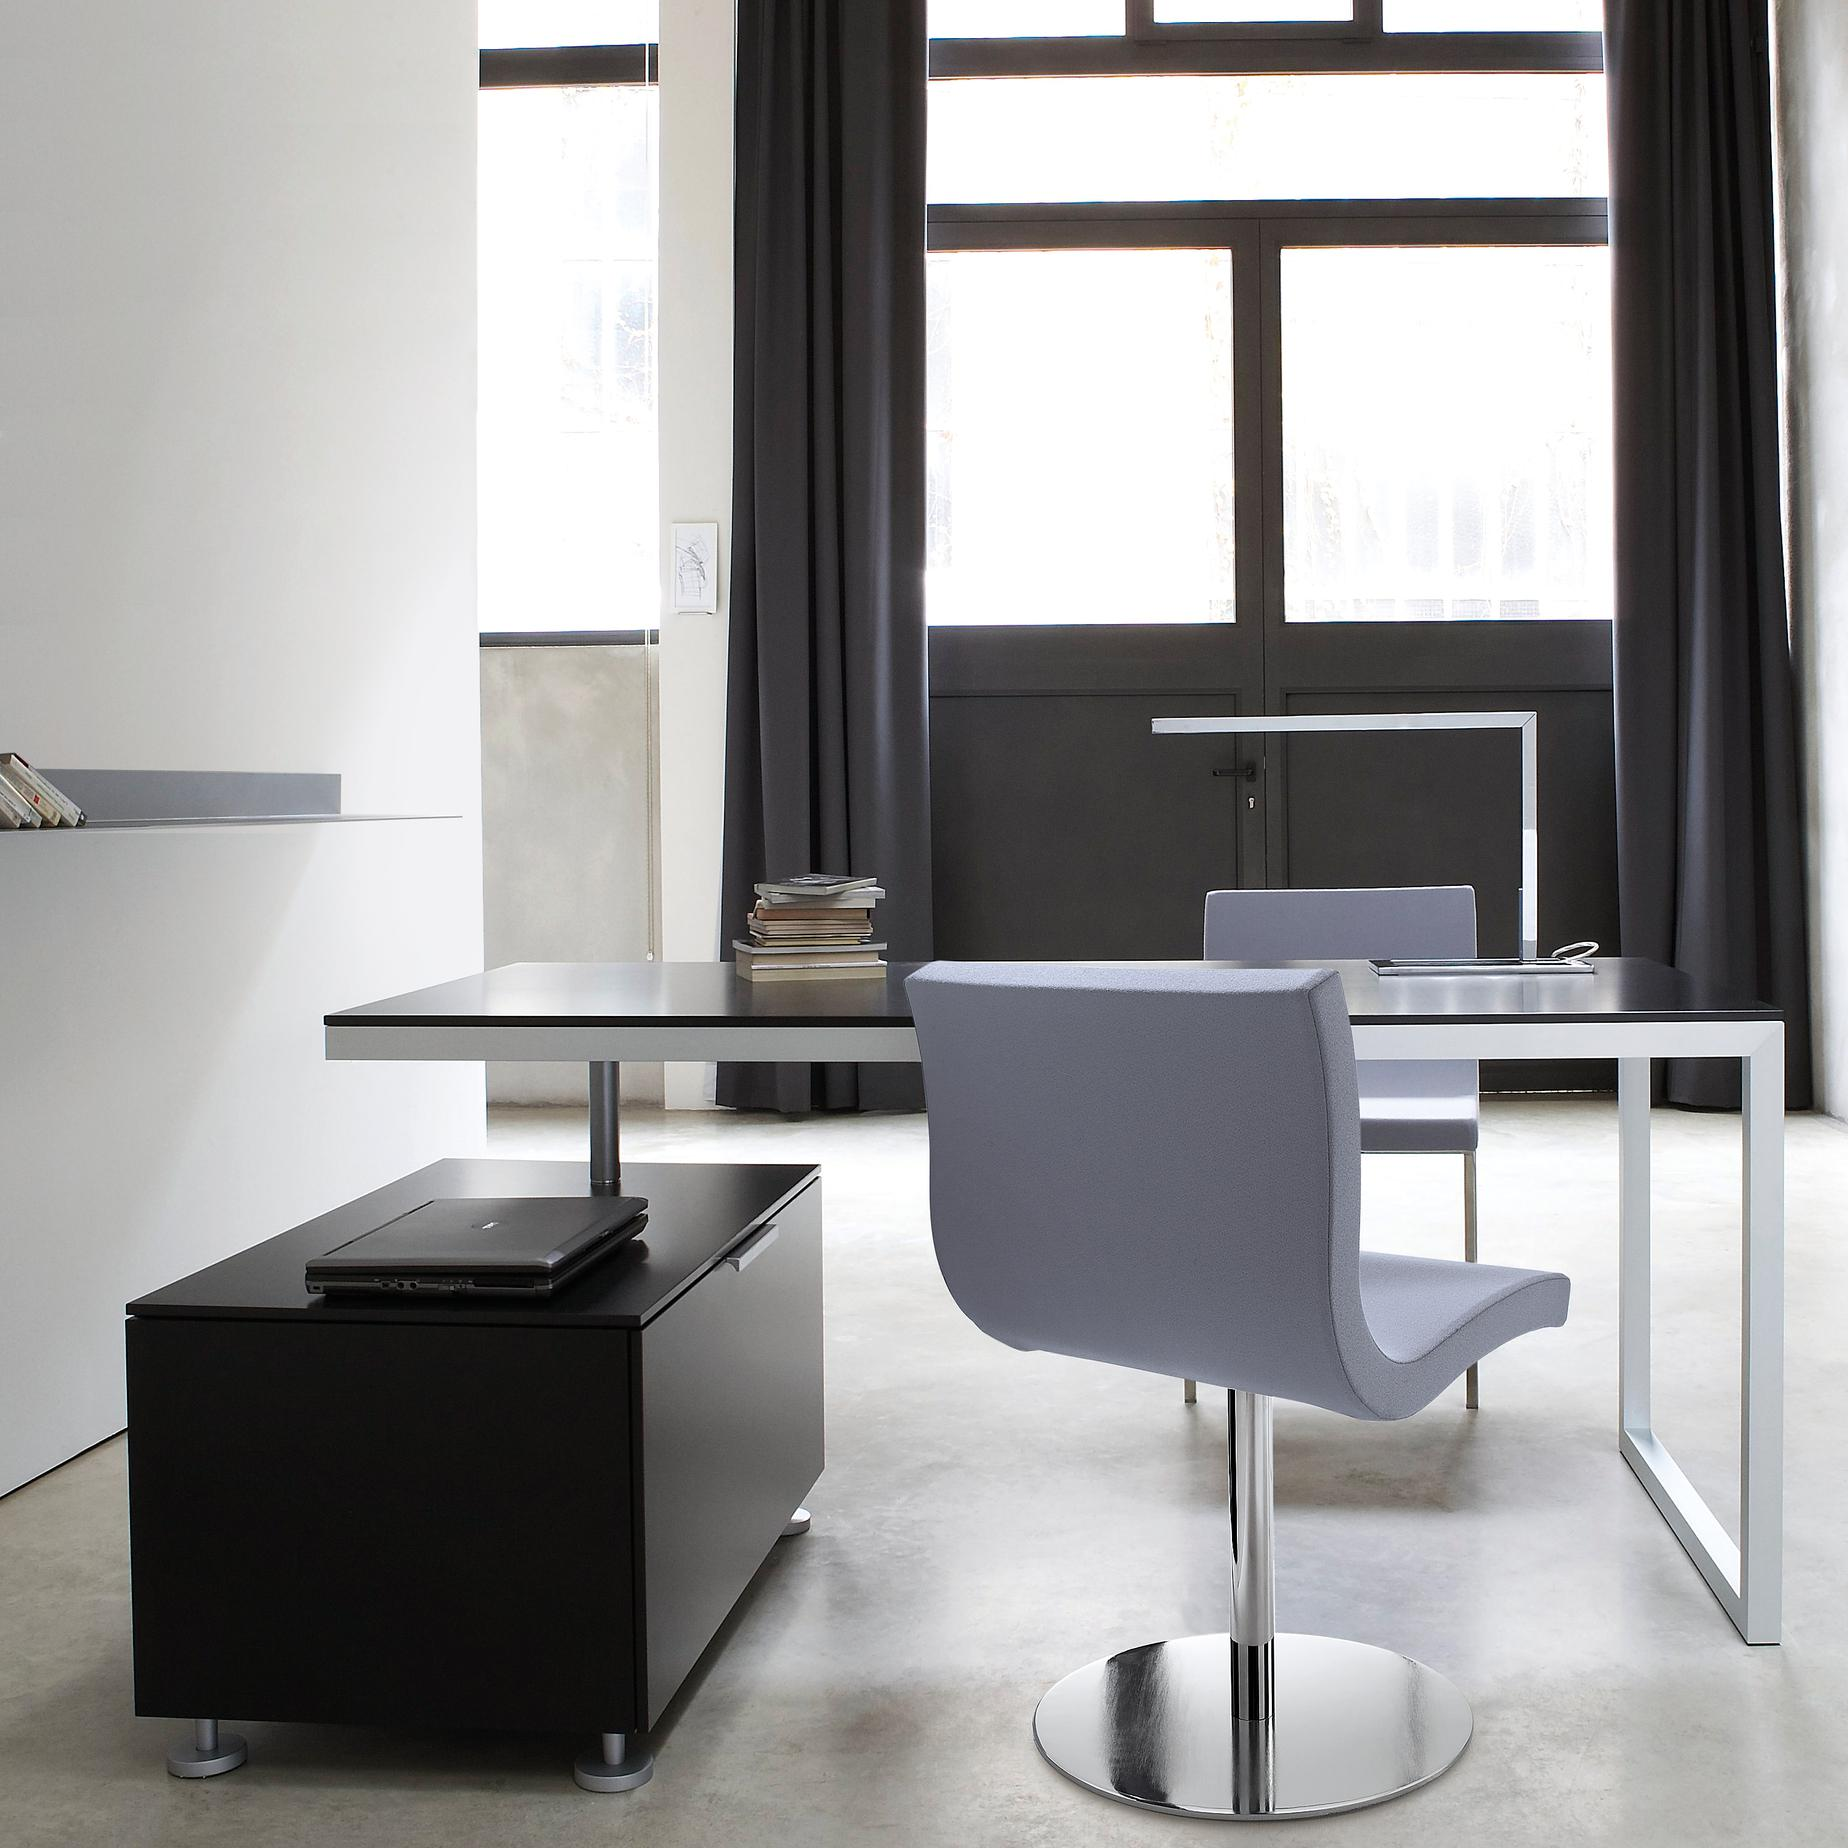 everywhere desks secretary from designer christian werner ligne roset official site. Black Bedroom Furniture Sets. Home Design Ideas